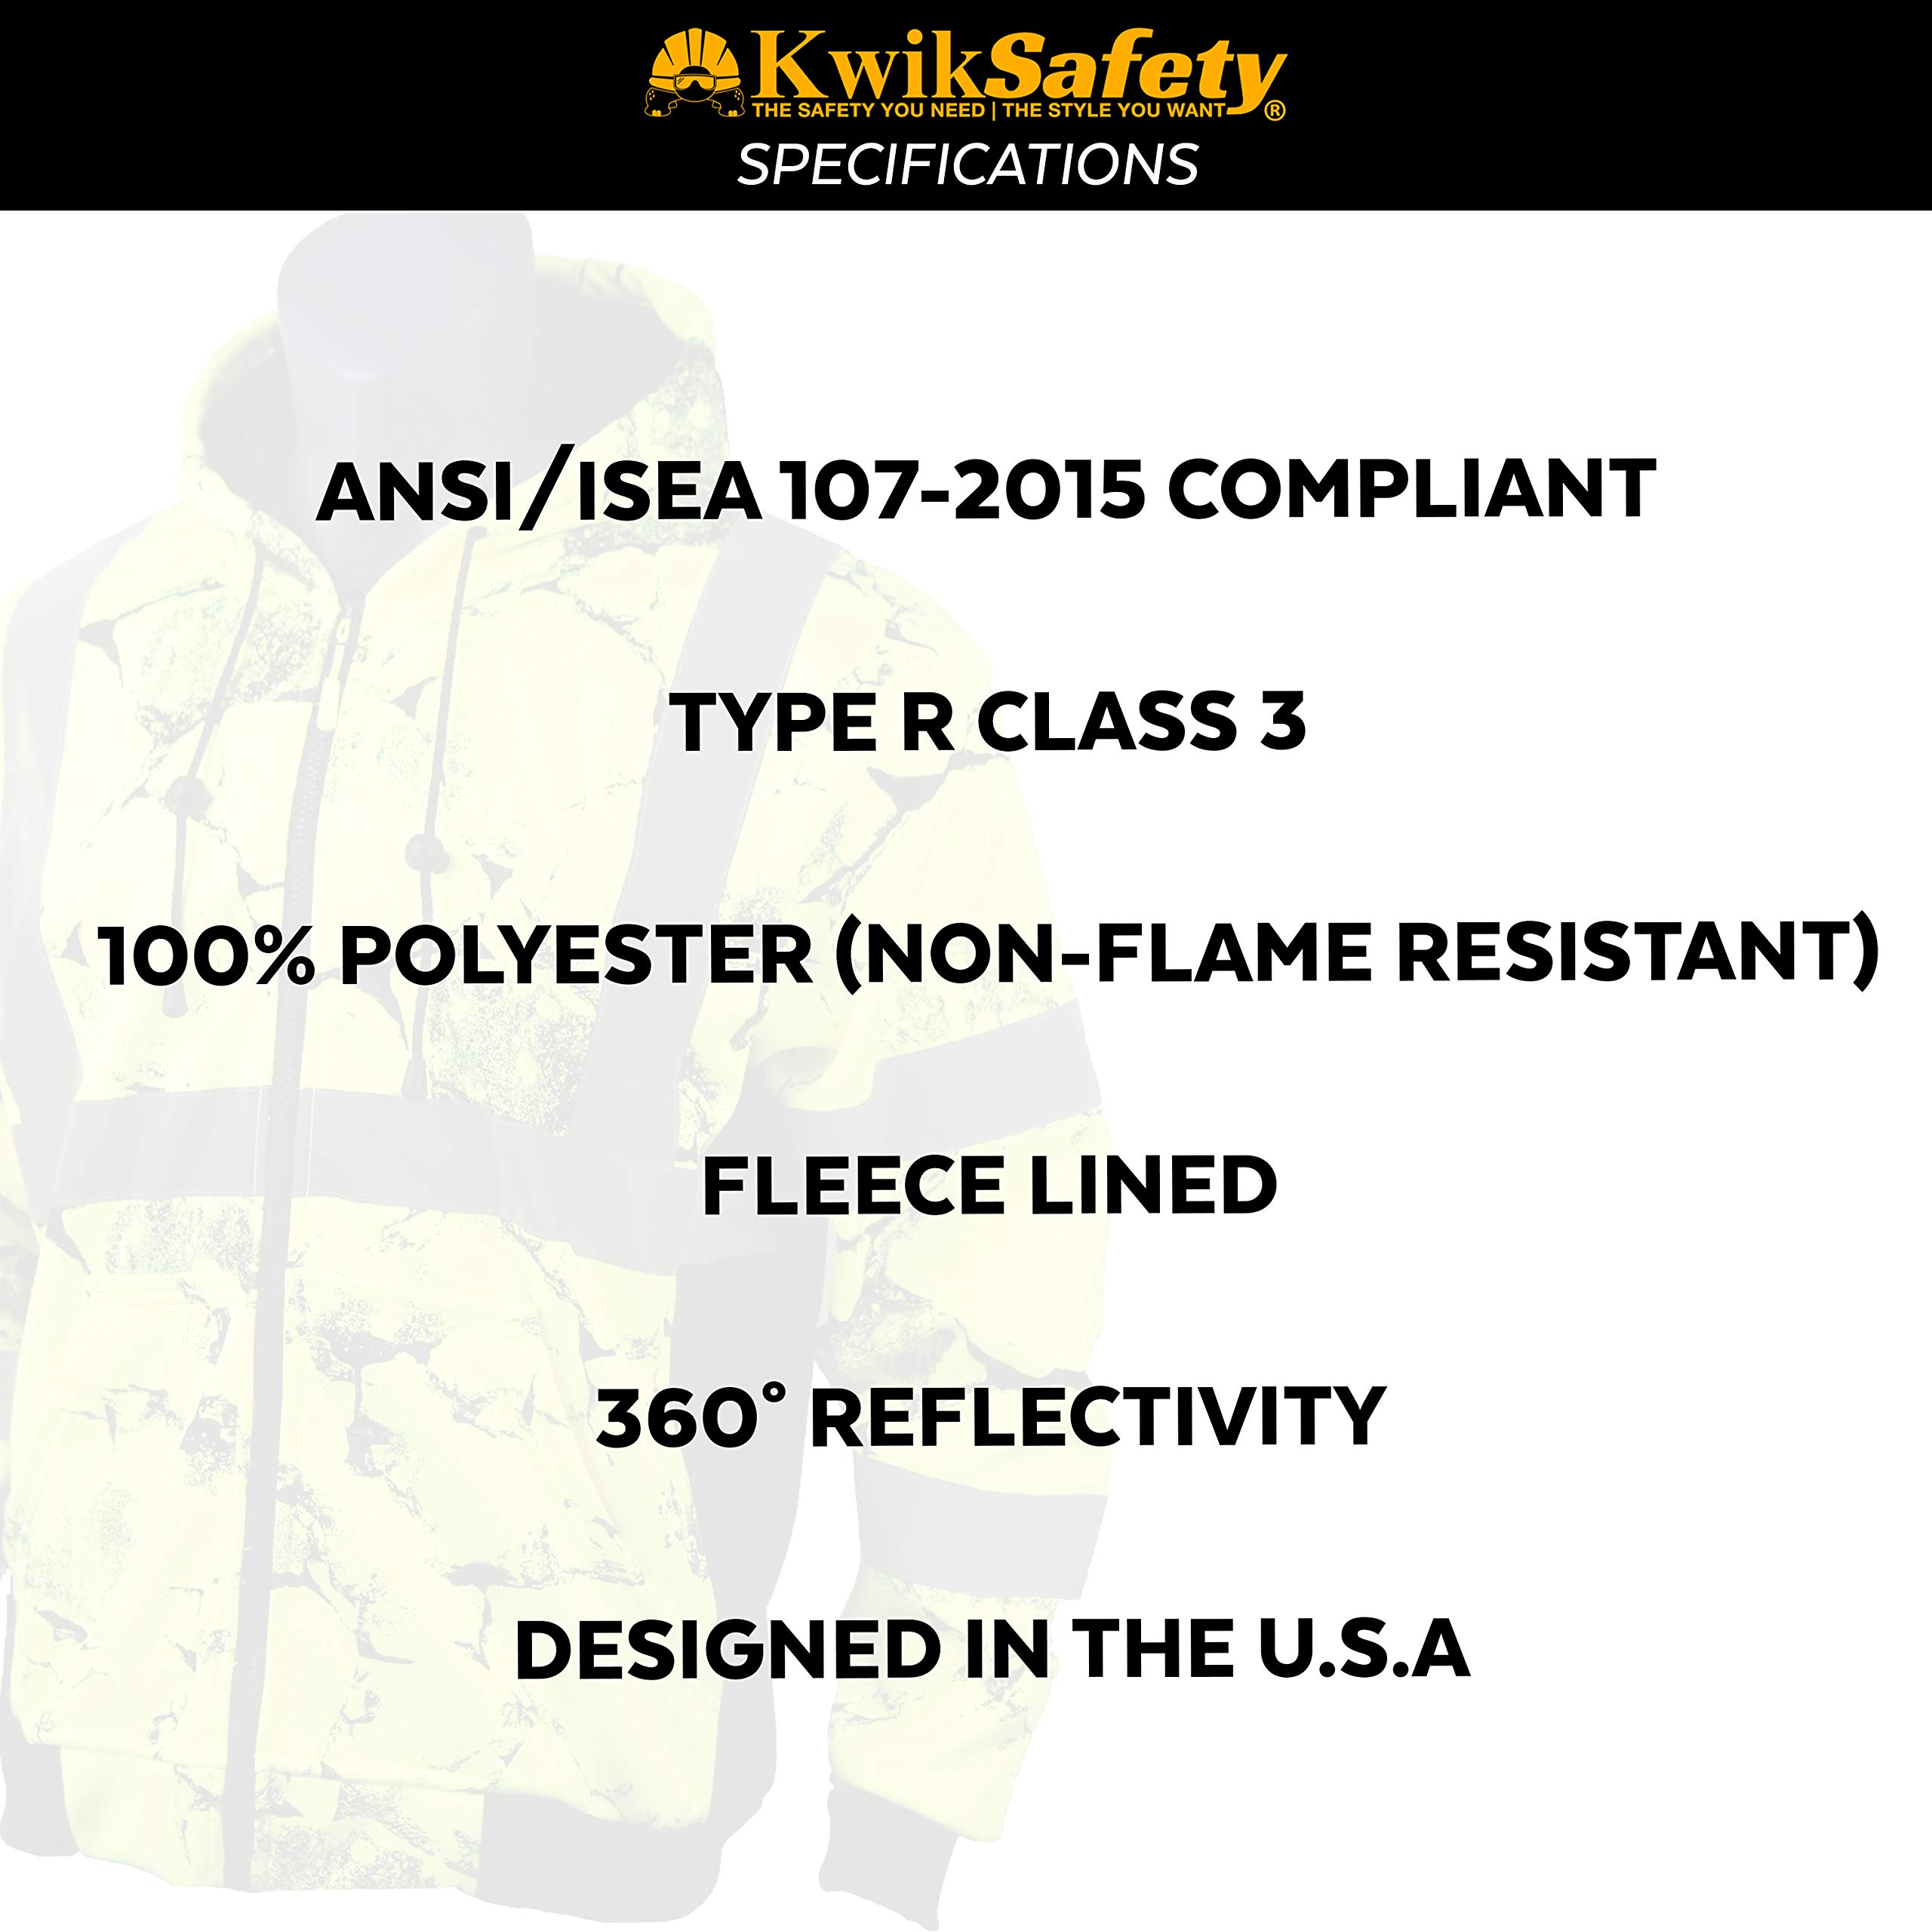 KwikSafety UNCLE WILLY'S WALL High Visibilty Reflective Anti Pill ANSI Class 3 Safety Jacket with Hoodie, Yellow, X-Large by KwikSafety (Image #6)